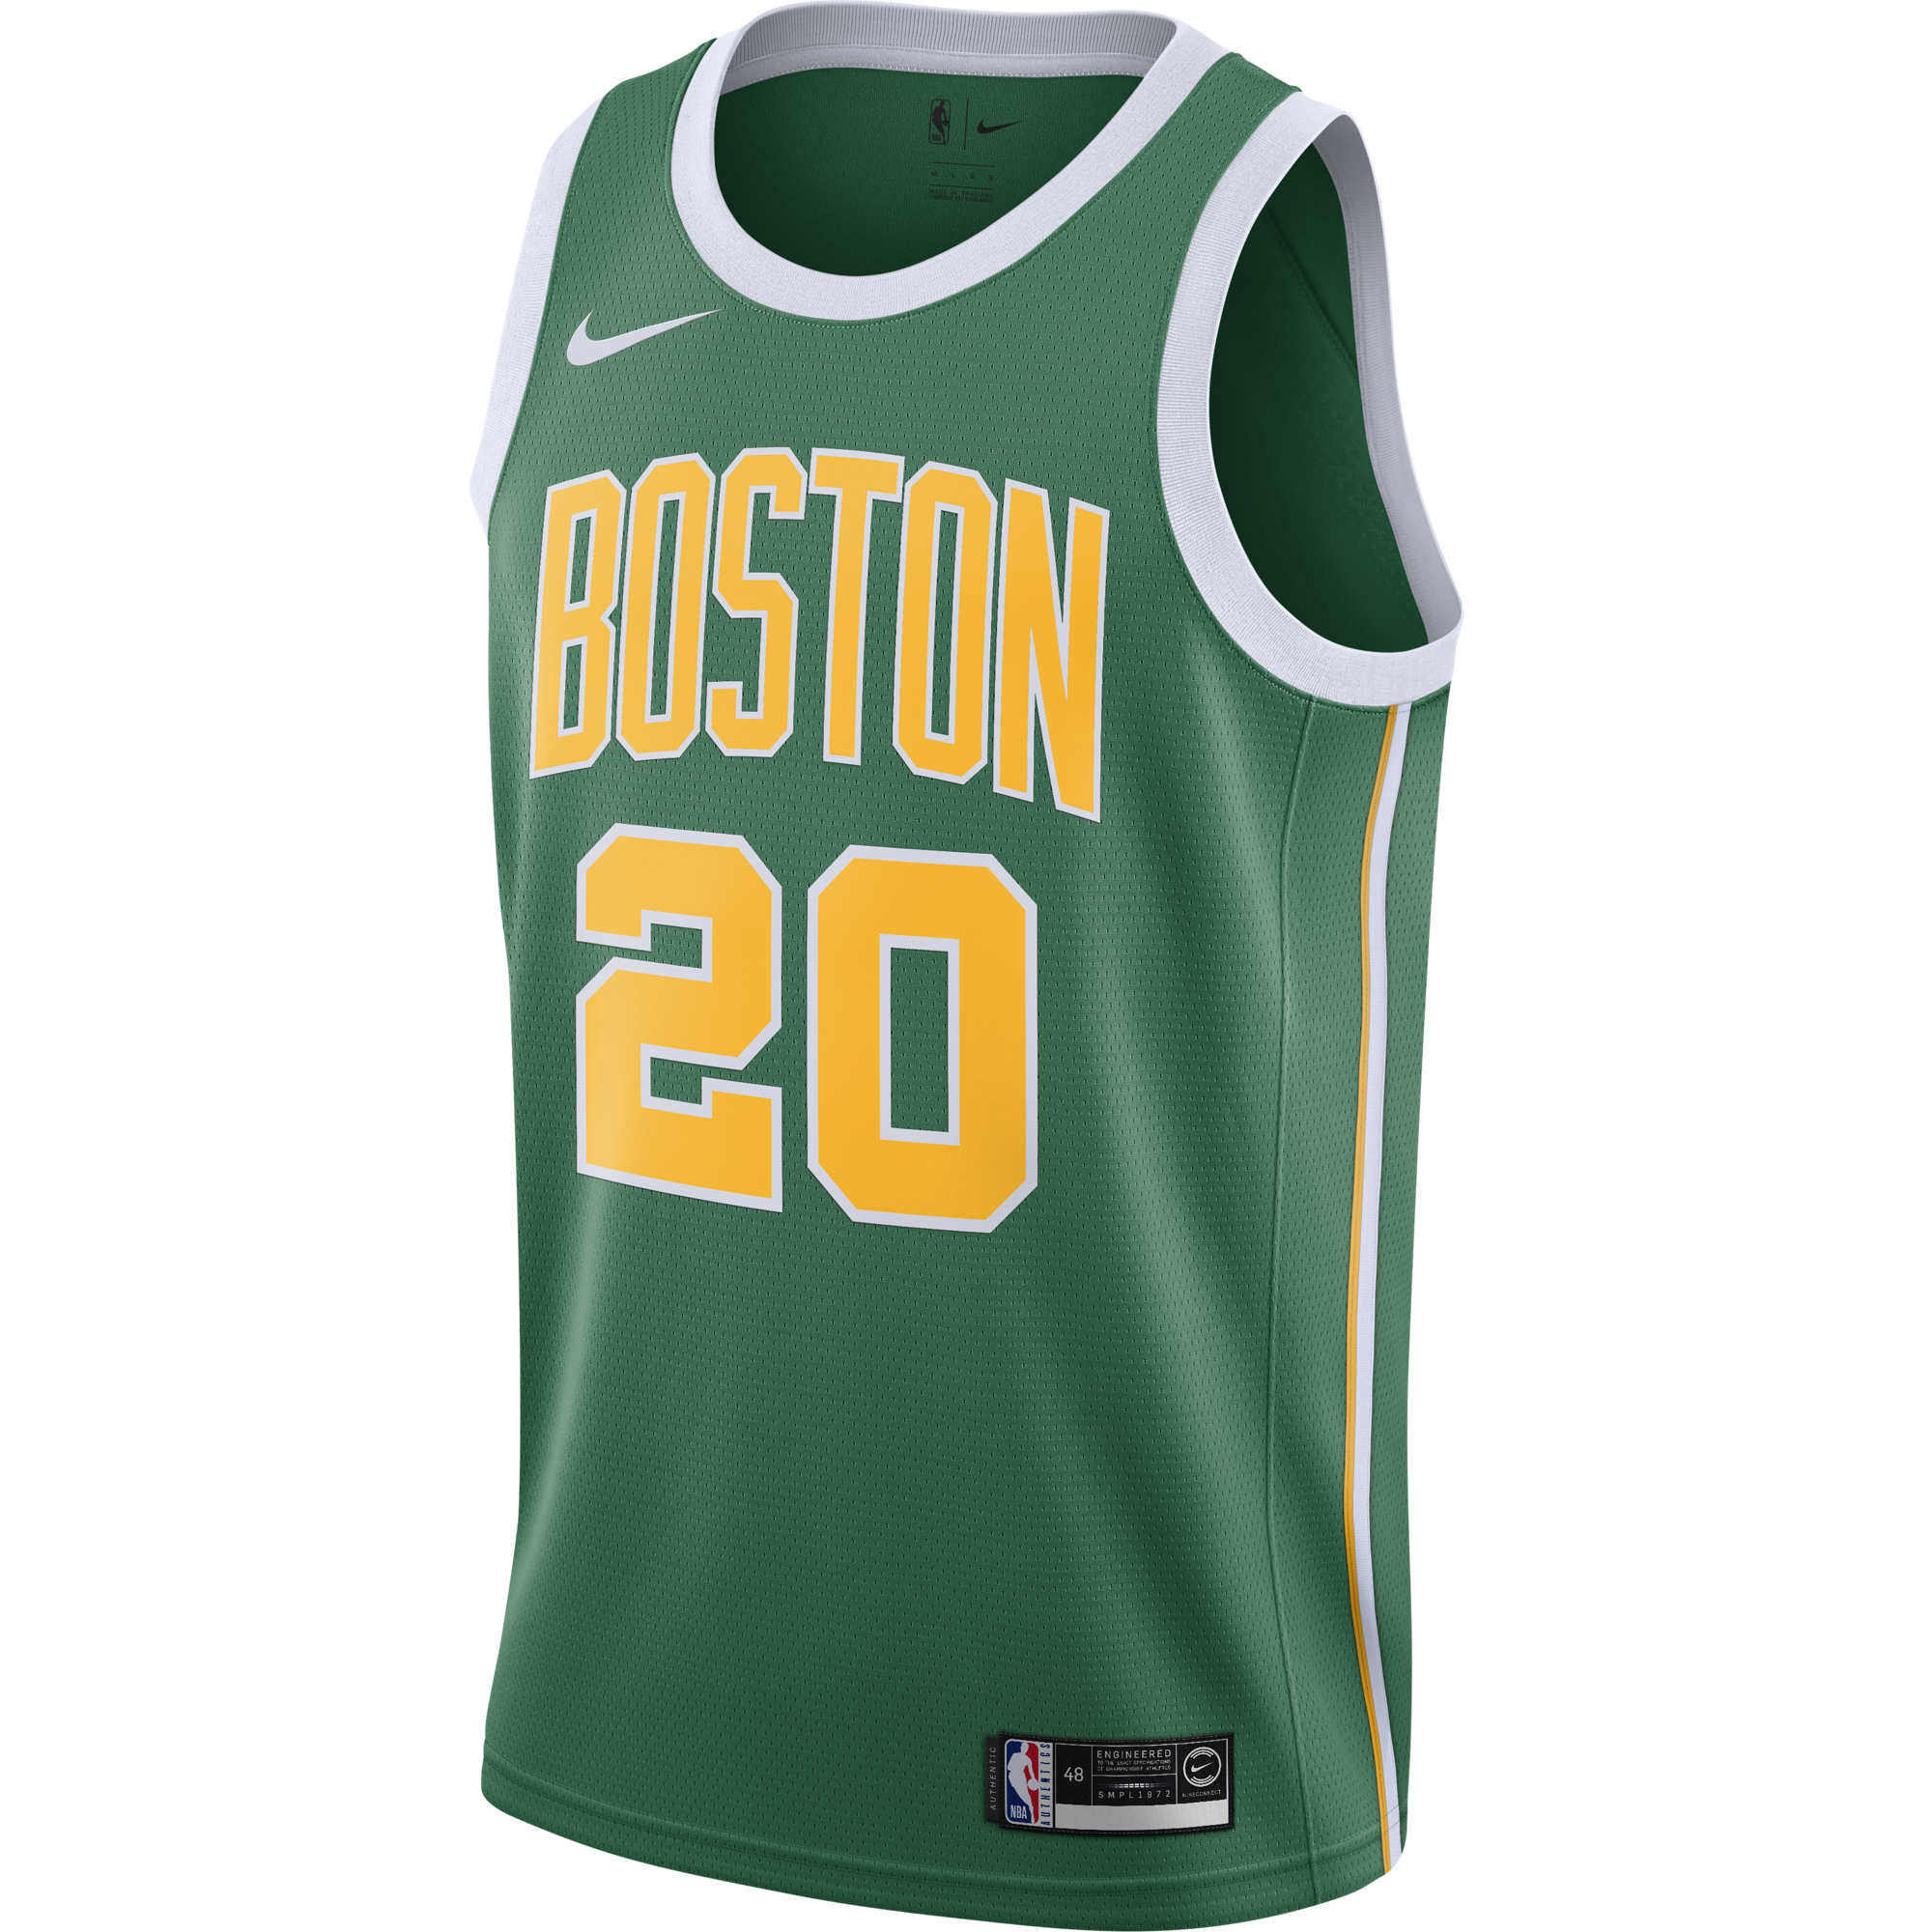 c4f8fa15008 Gordon Hayward Nike Swingman Jersey - Earned Edition for  109.99 Fanatics